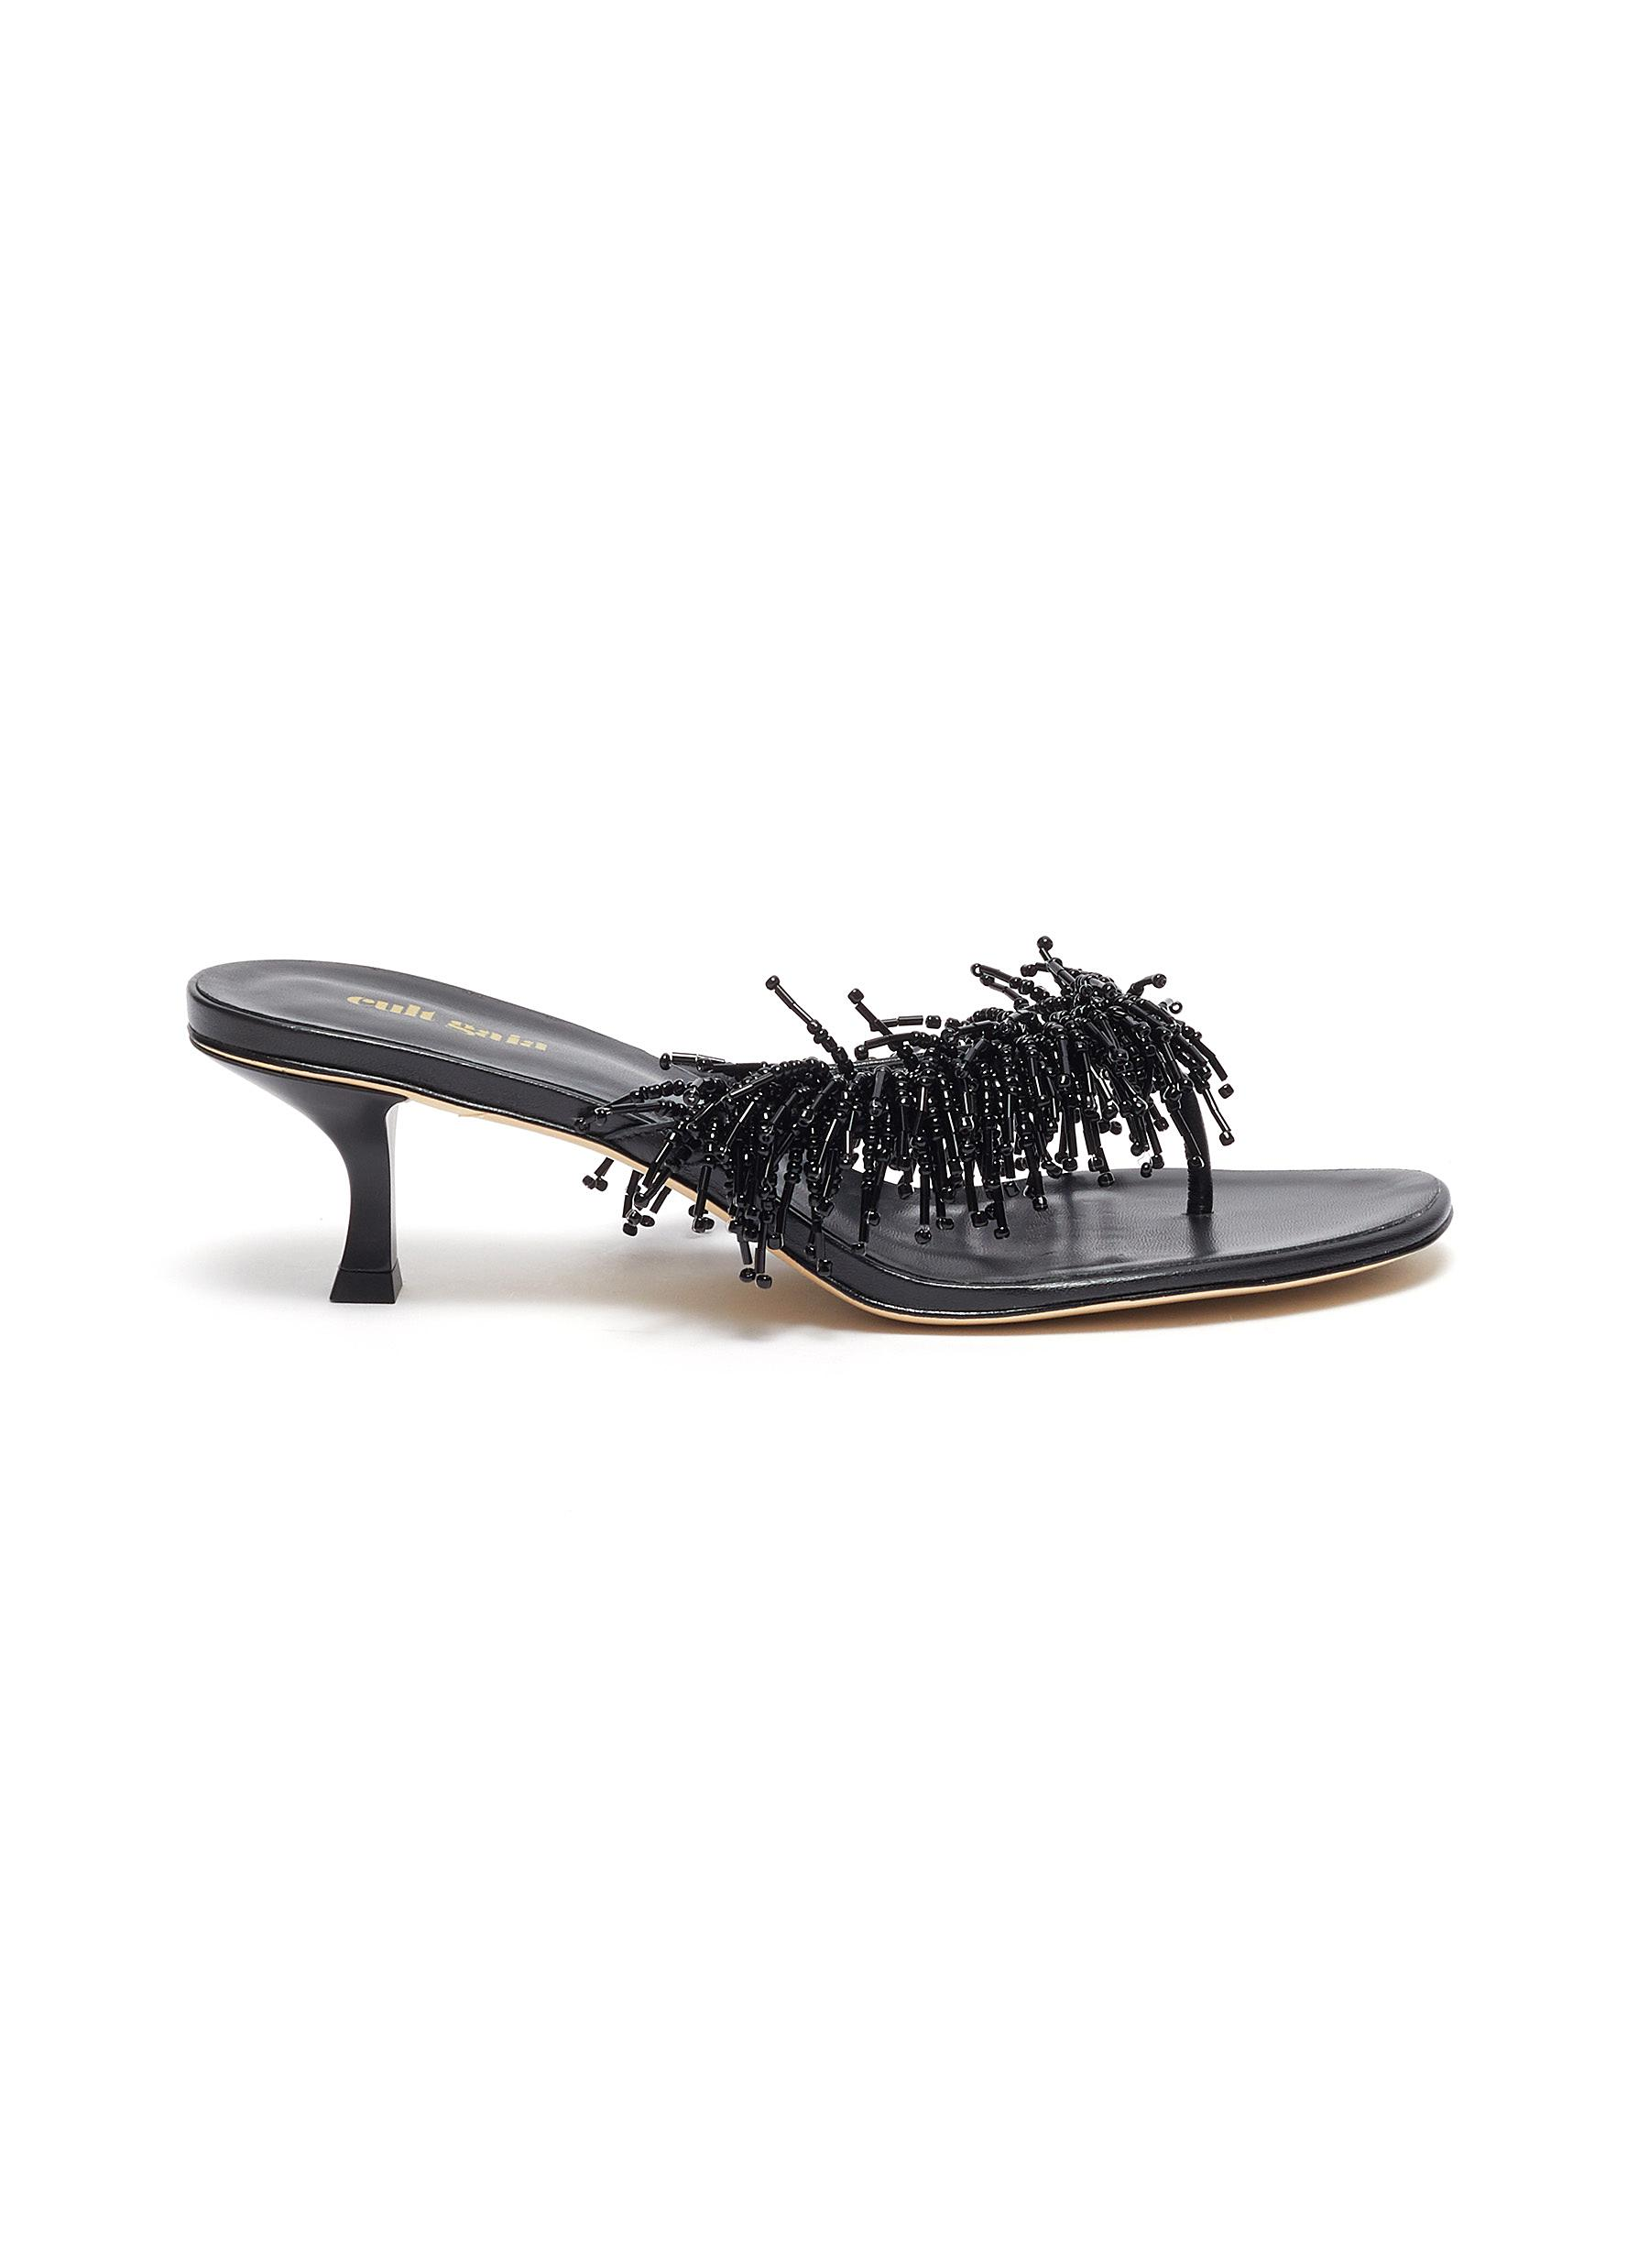 Cult Gaia HERA BEADED TASSEL HEELED LEATHER THONG SANDALS